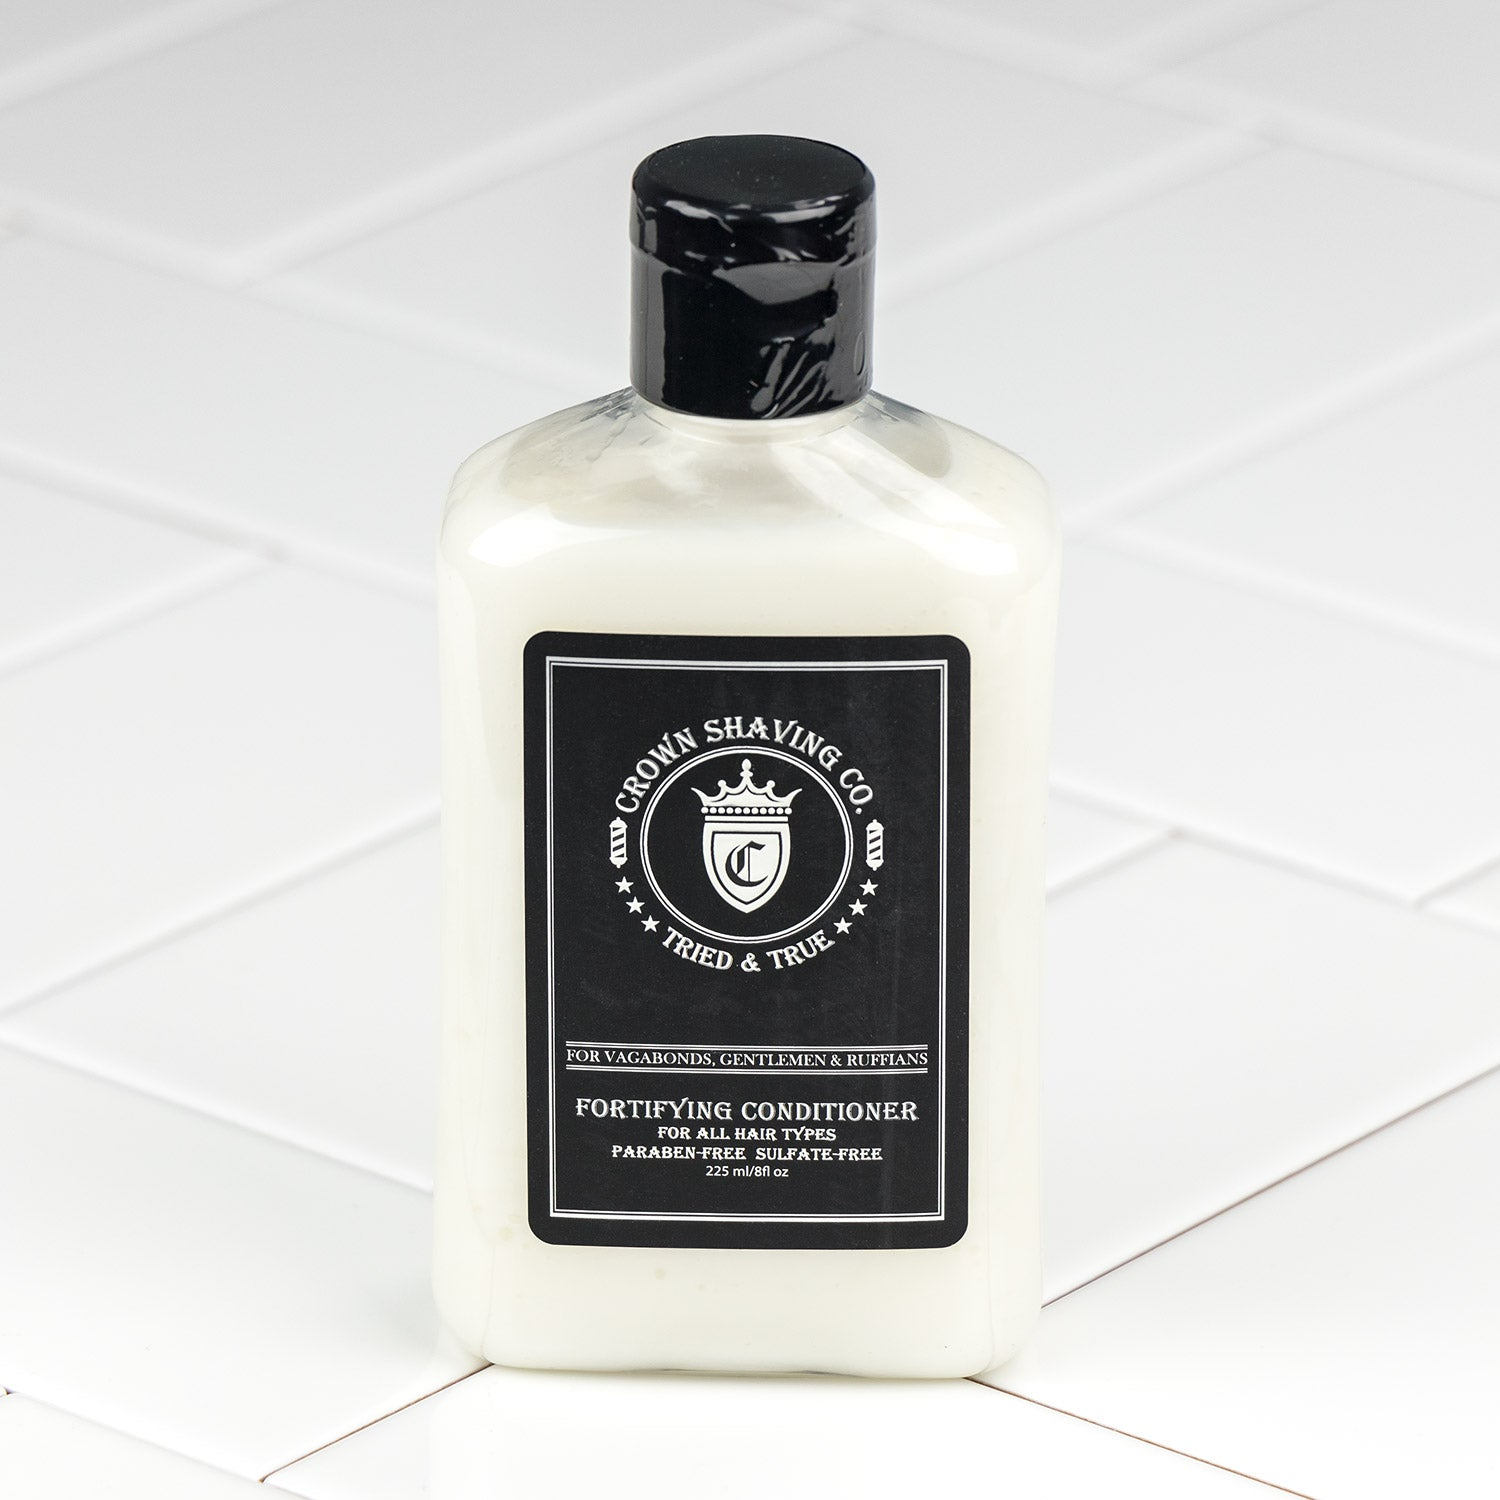 Crown Shaving Co. Fortifying Conditioner 8 oz